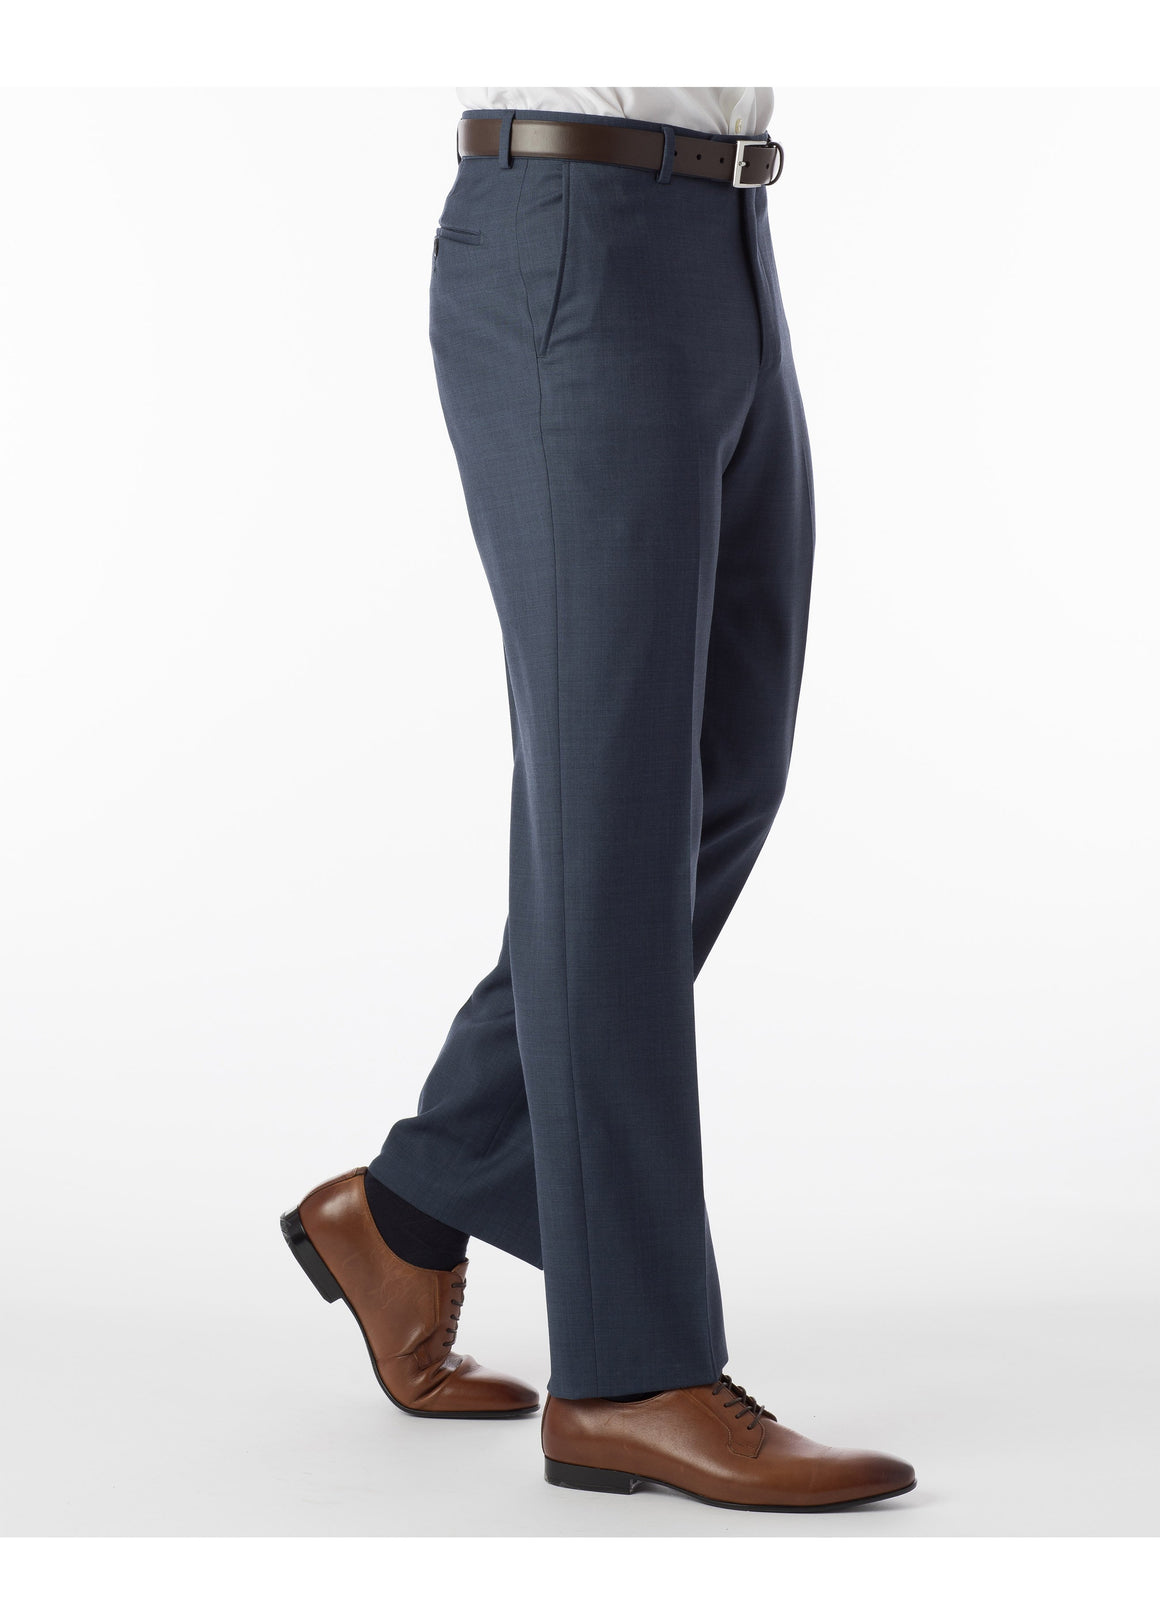 Ballin Super 110's Comfort Eze Sharkskin Soho Dress Pants | New Navy